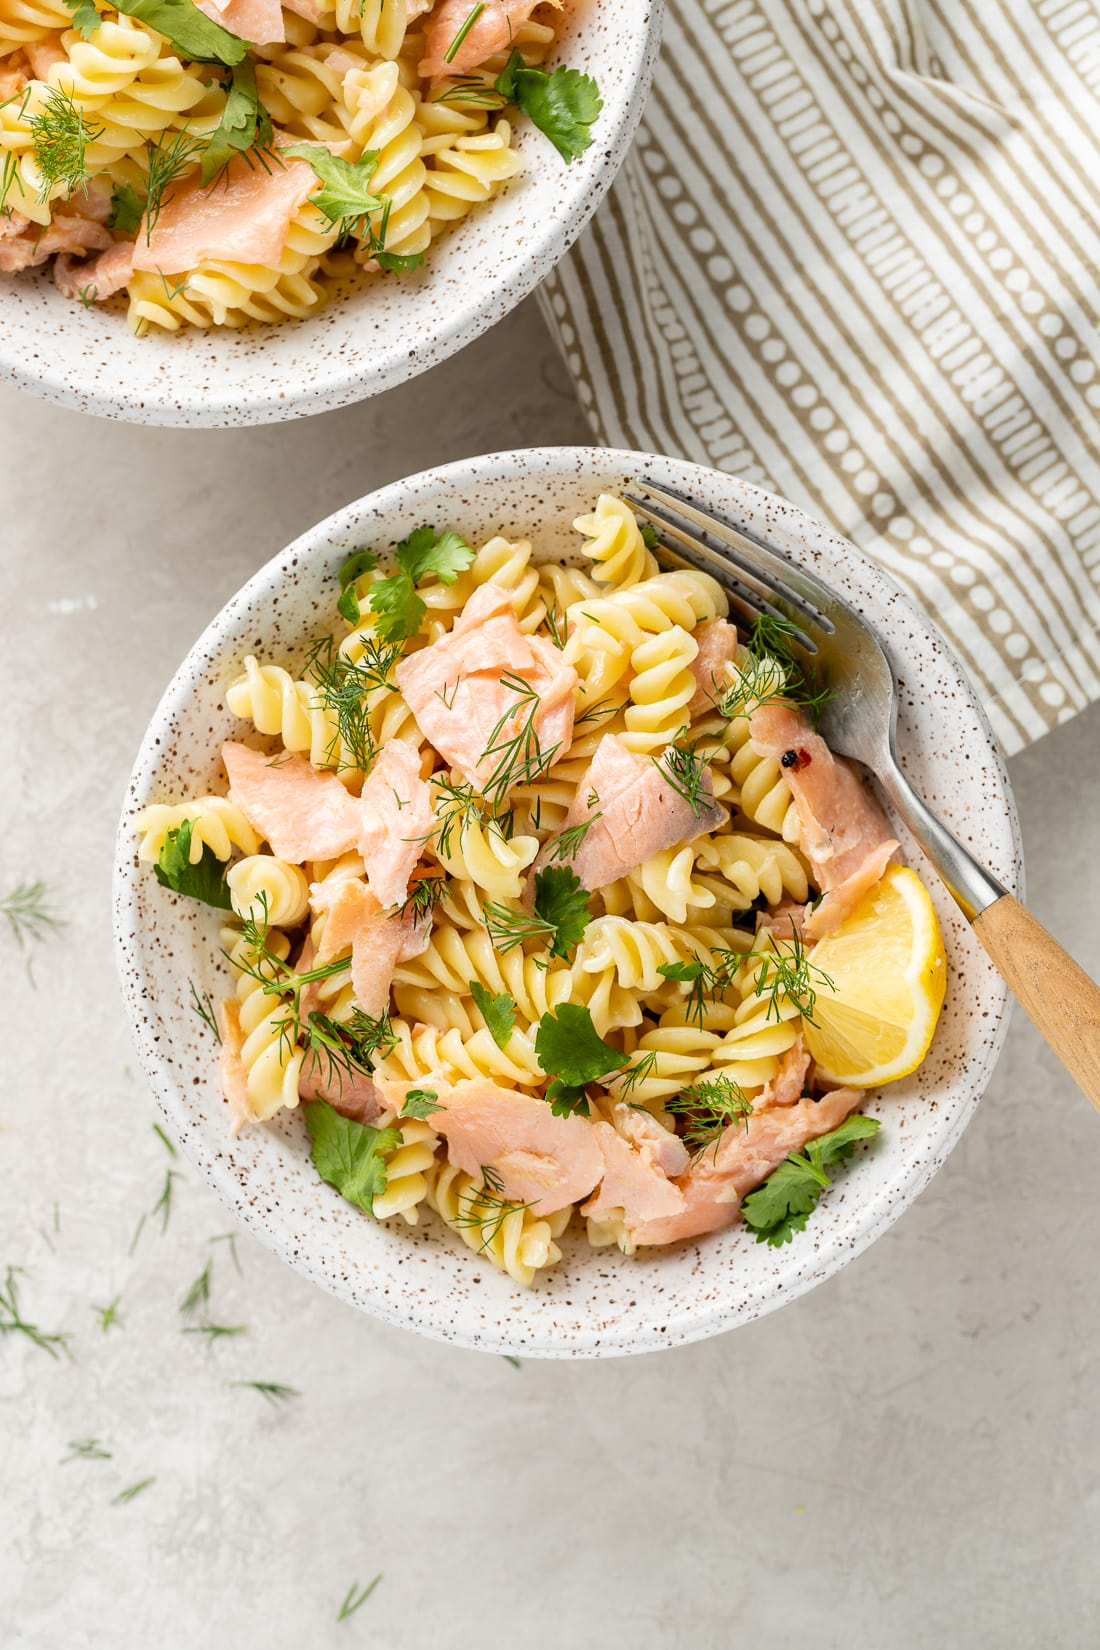 White bowl filled with a serving of Creamy Smoked Salmon Pasta with a lemon wedge.